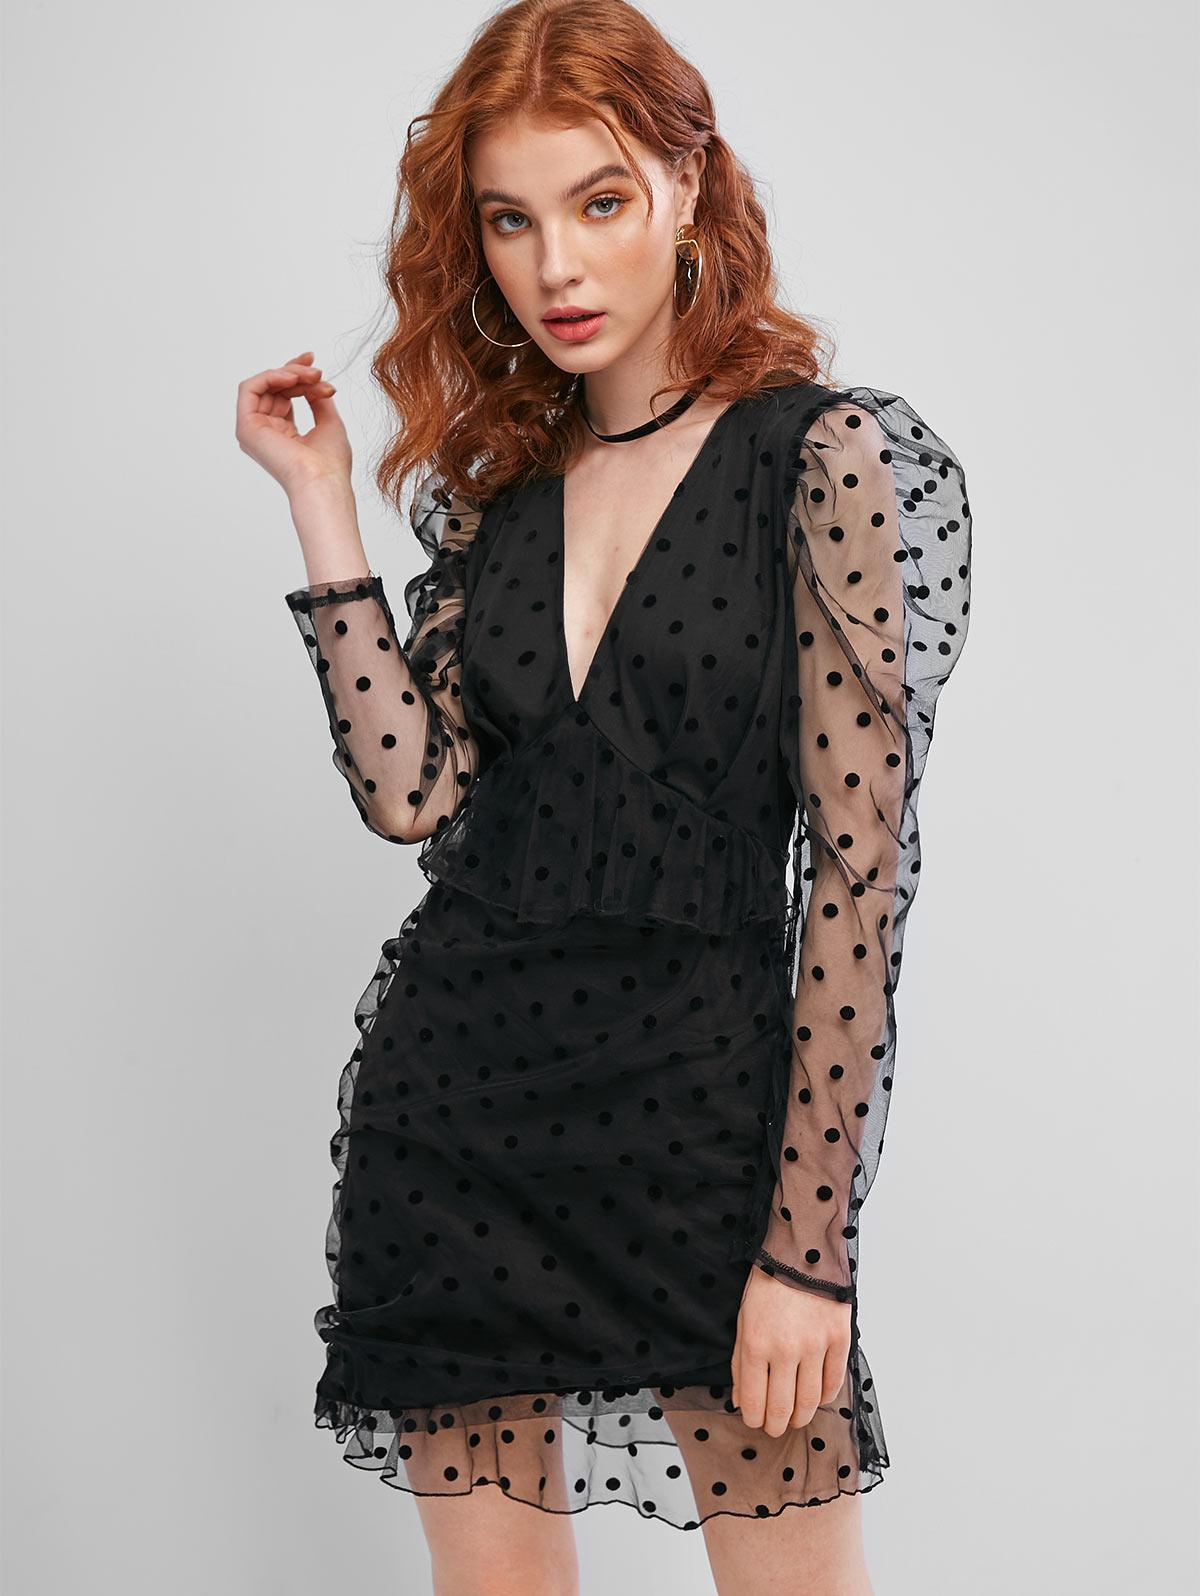 ZAFUL Long Sleeve Polka Dot Mesh Mini Dress фото